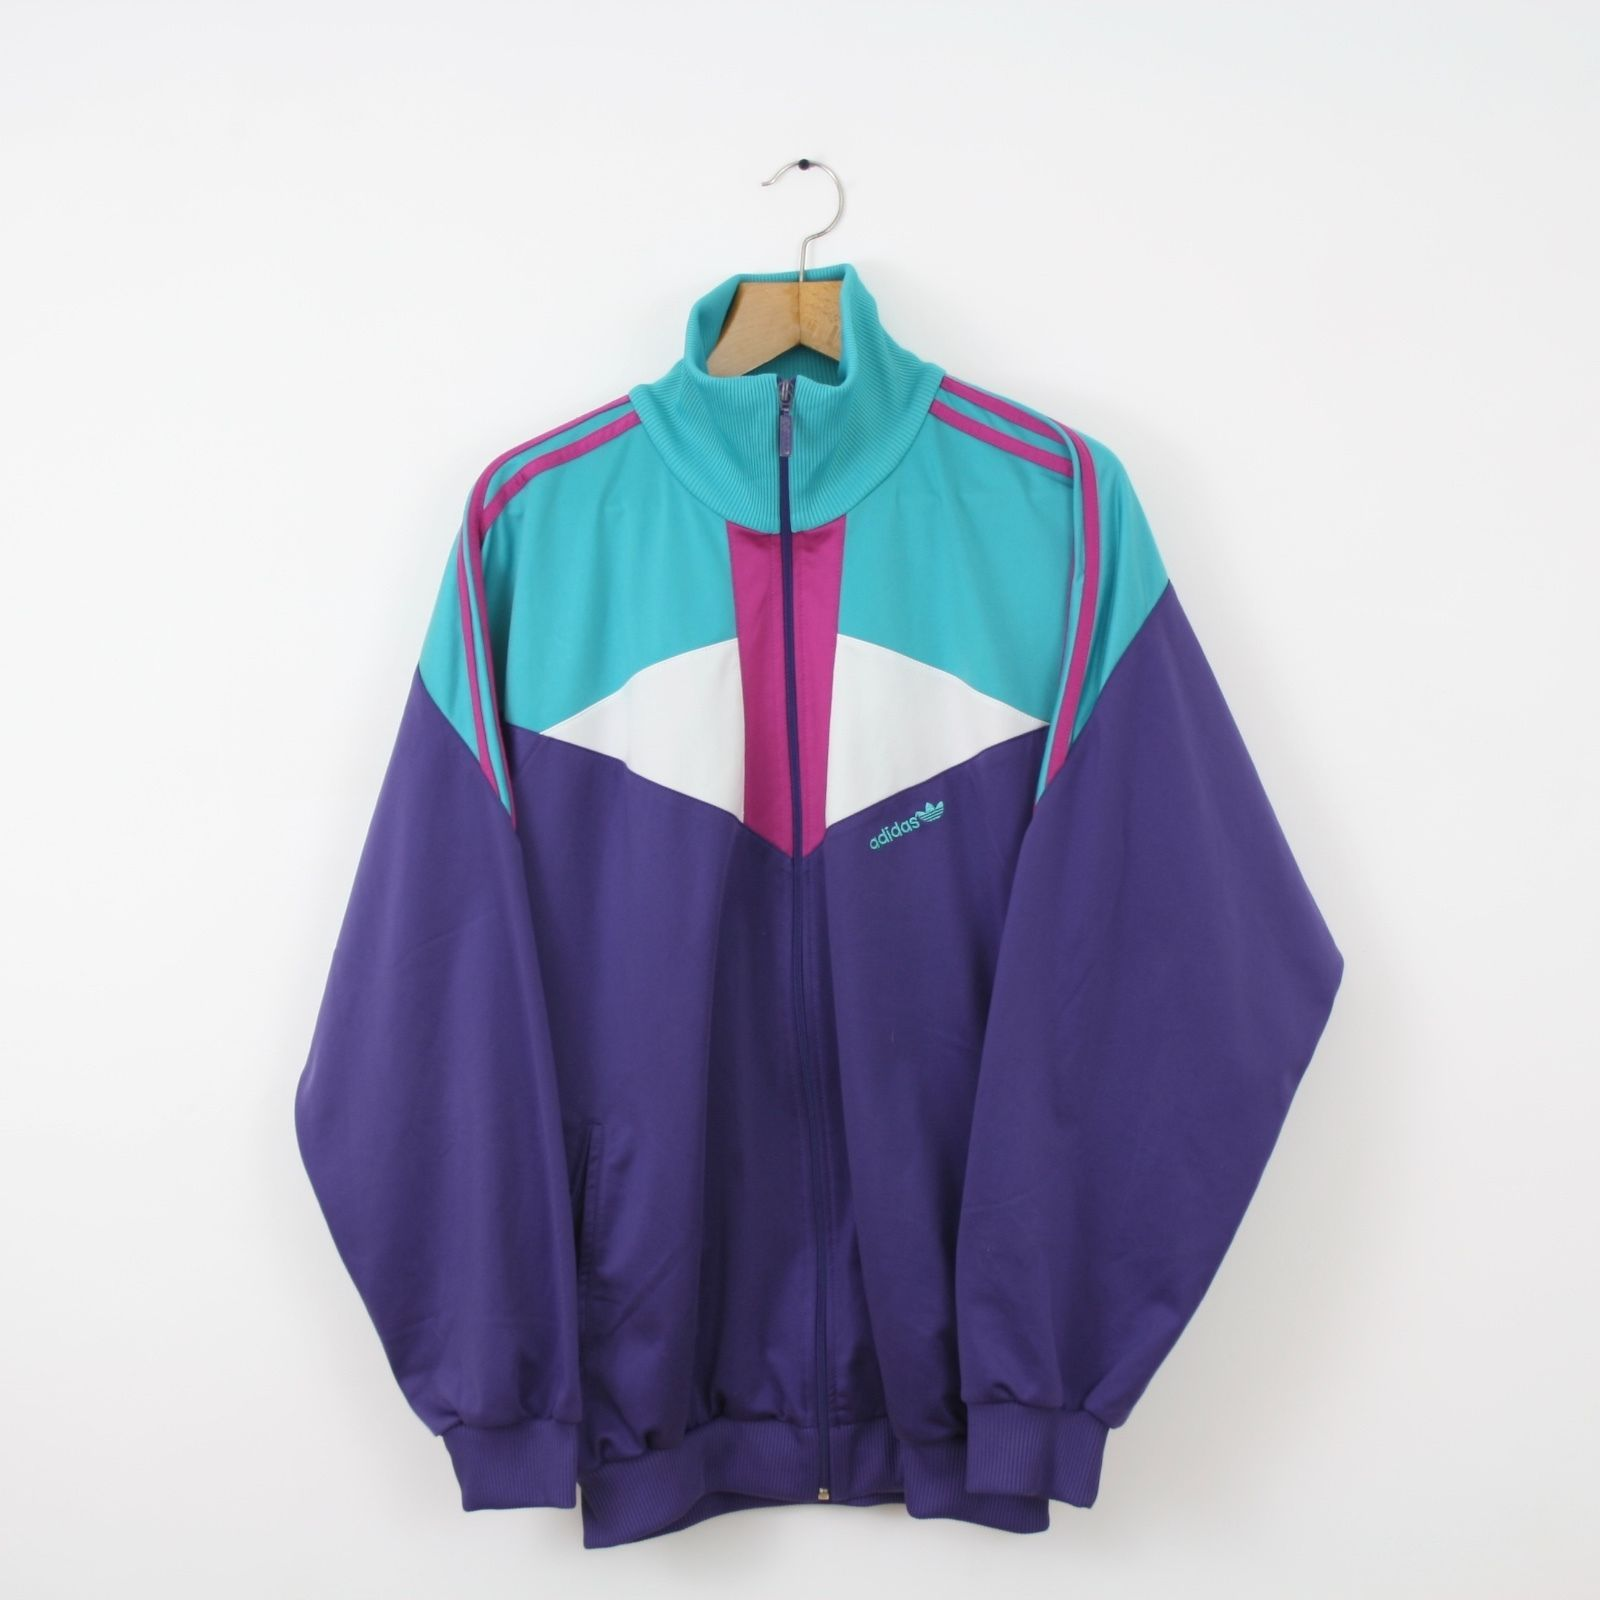 6ba2dfd4eb8 Vintage ADIDAS 80s/90s Purple Green Tracksuit Top Jacket | Original Trefoil  | XL in Clothing, Shoes & Accessories, Men's Clothing, Athletic Apparel |  eBay